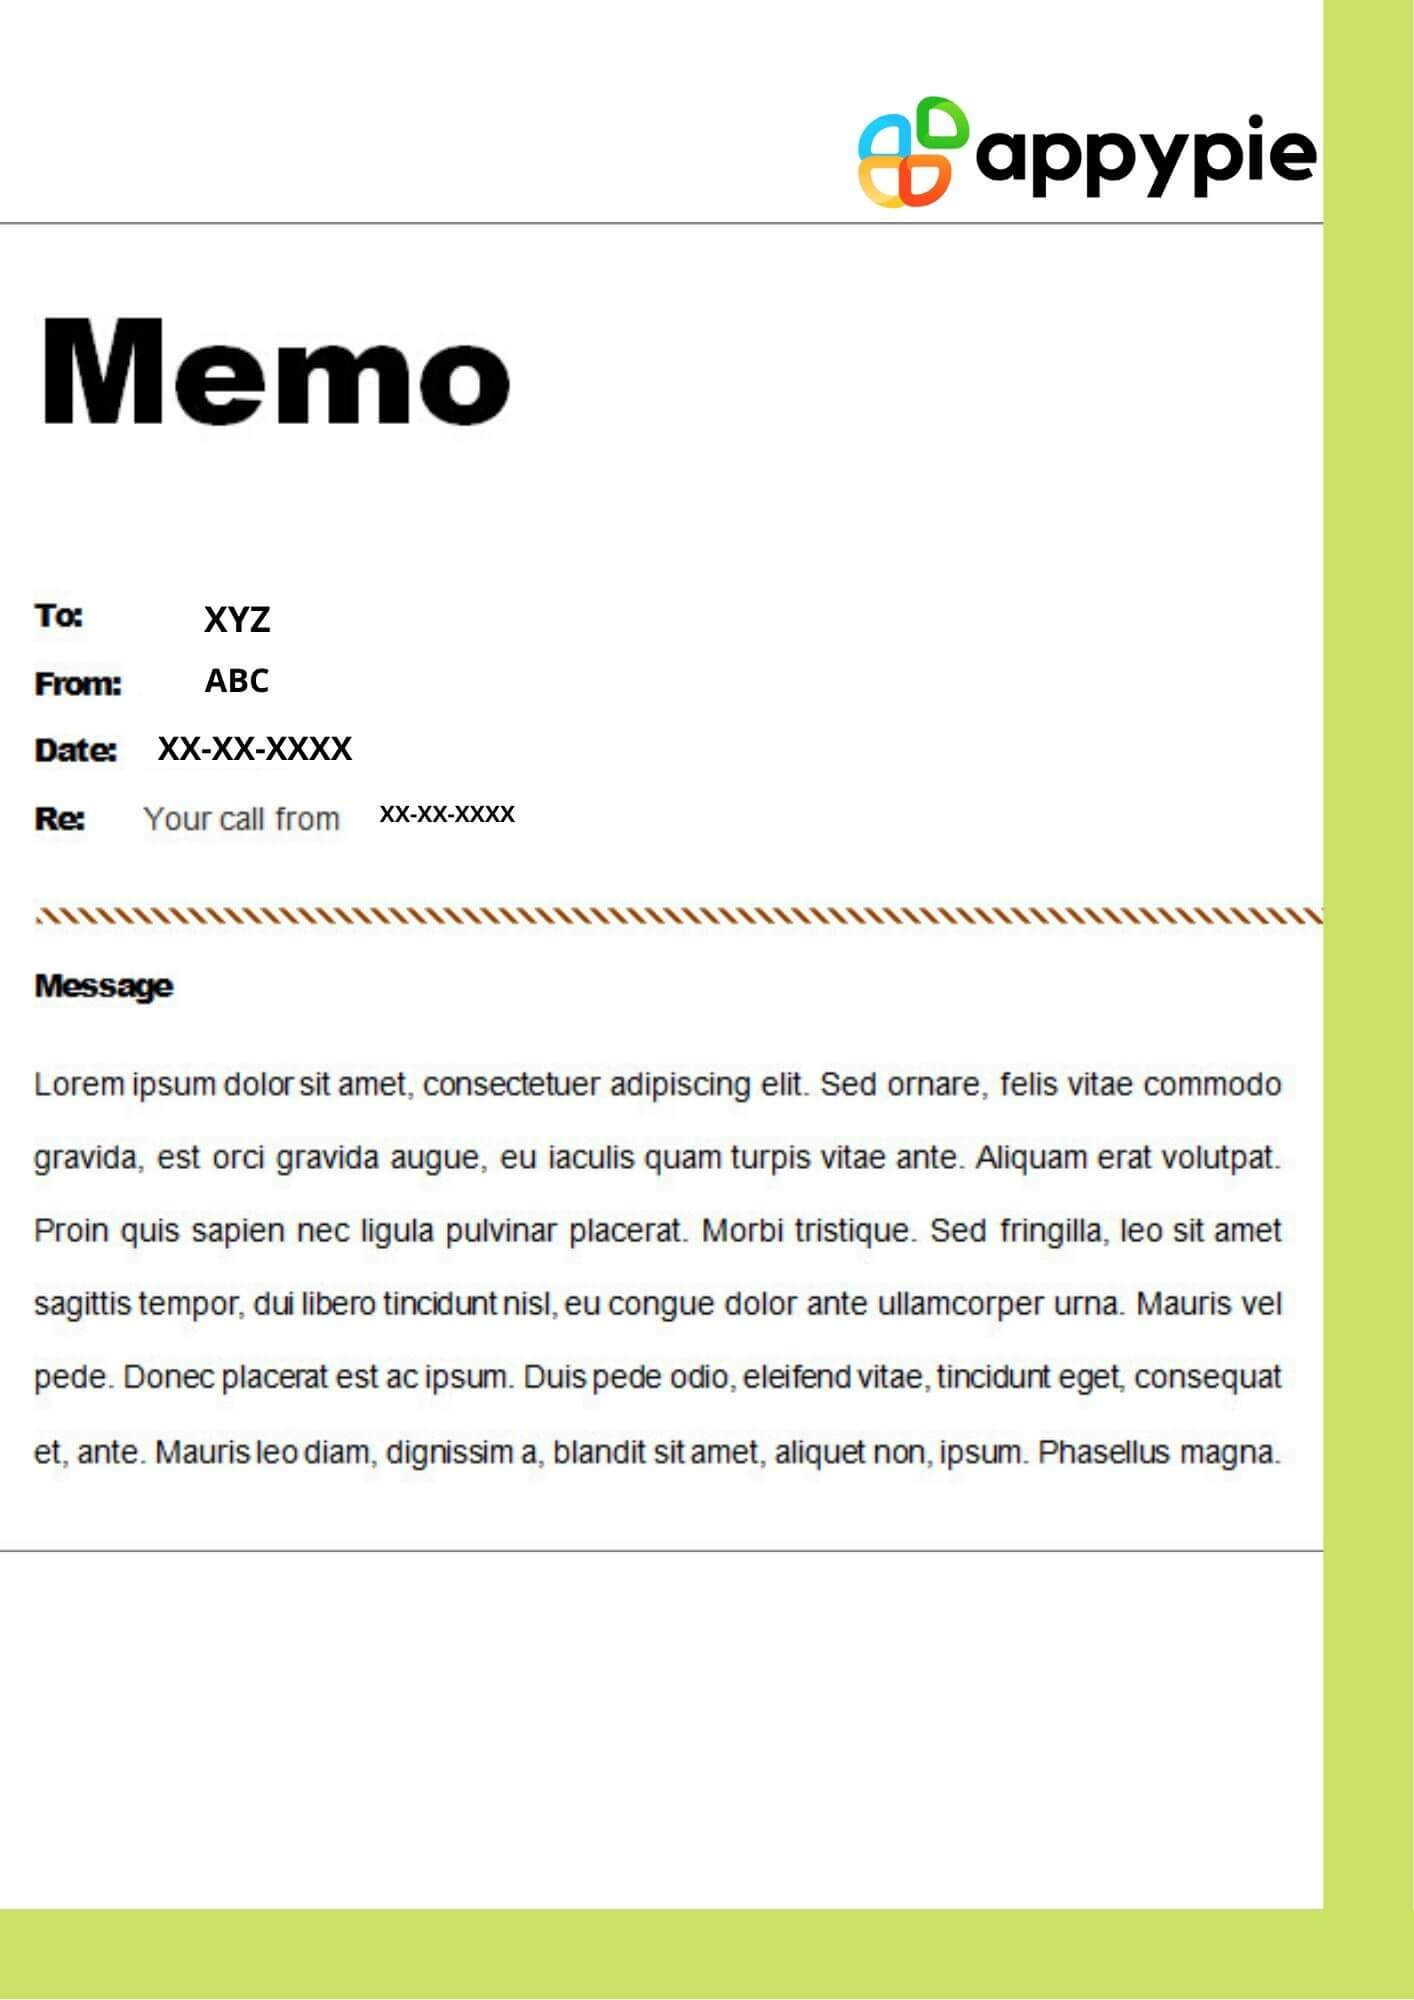 How To Write A Memo - Appy Pie